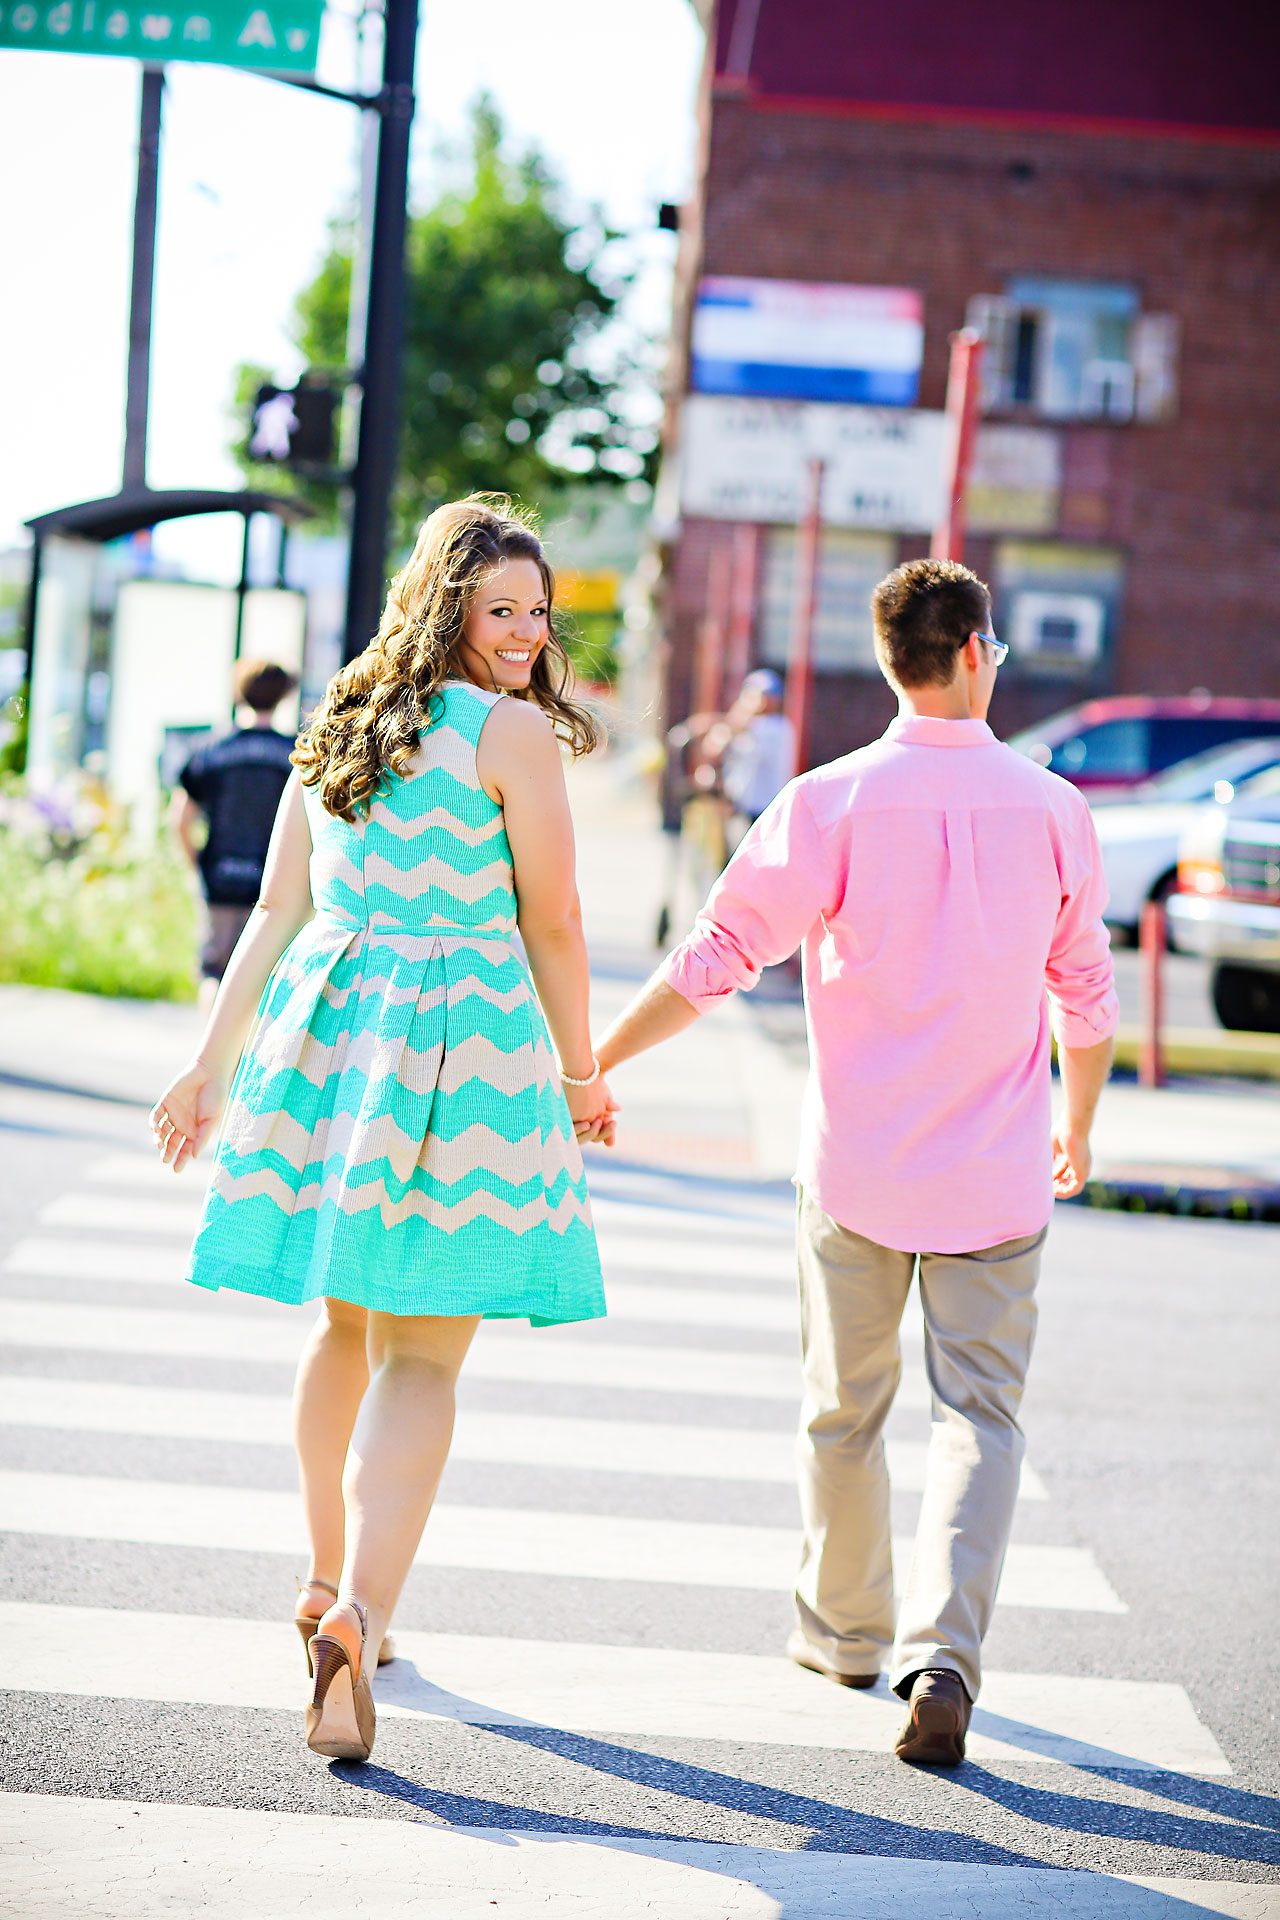 Indianapolis Engagement Photographer Kim Spencer 003